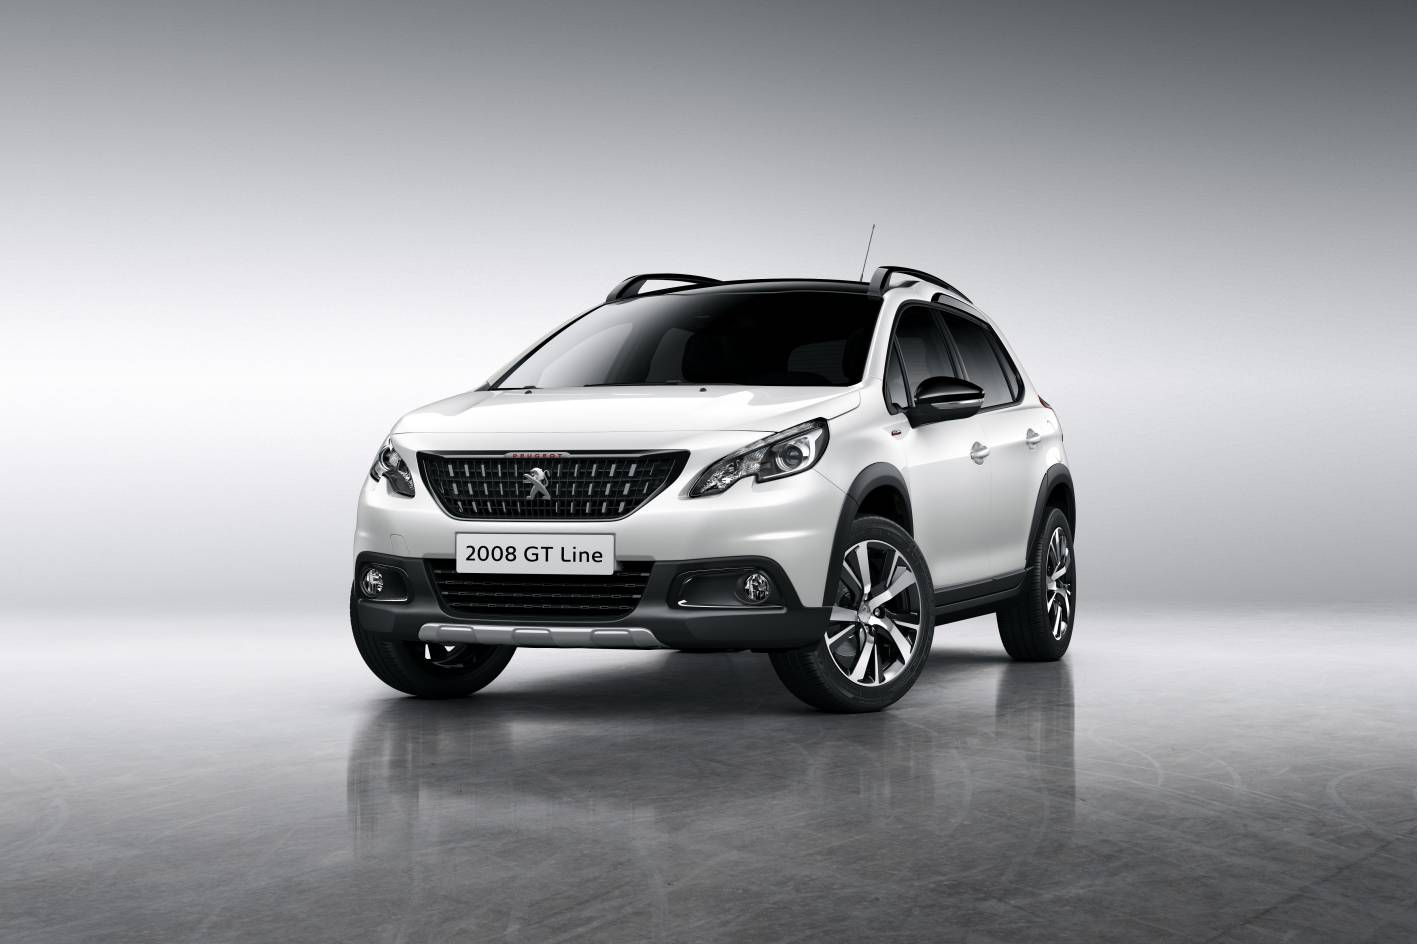 New 2019 Peugeot 2008 SUV: specs and prices announced